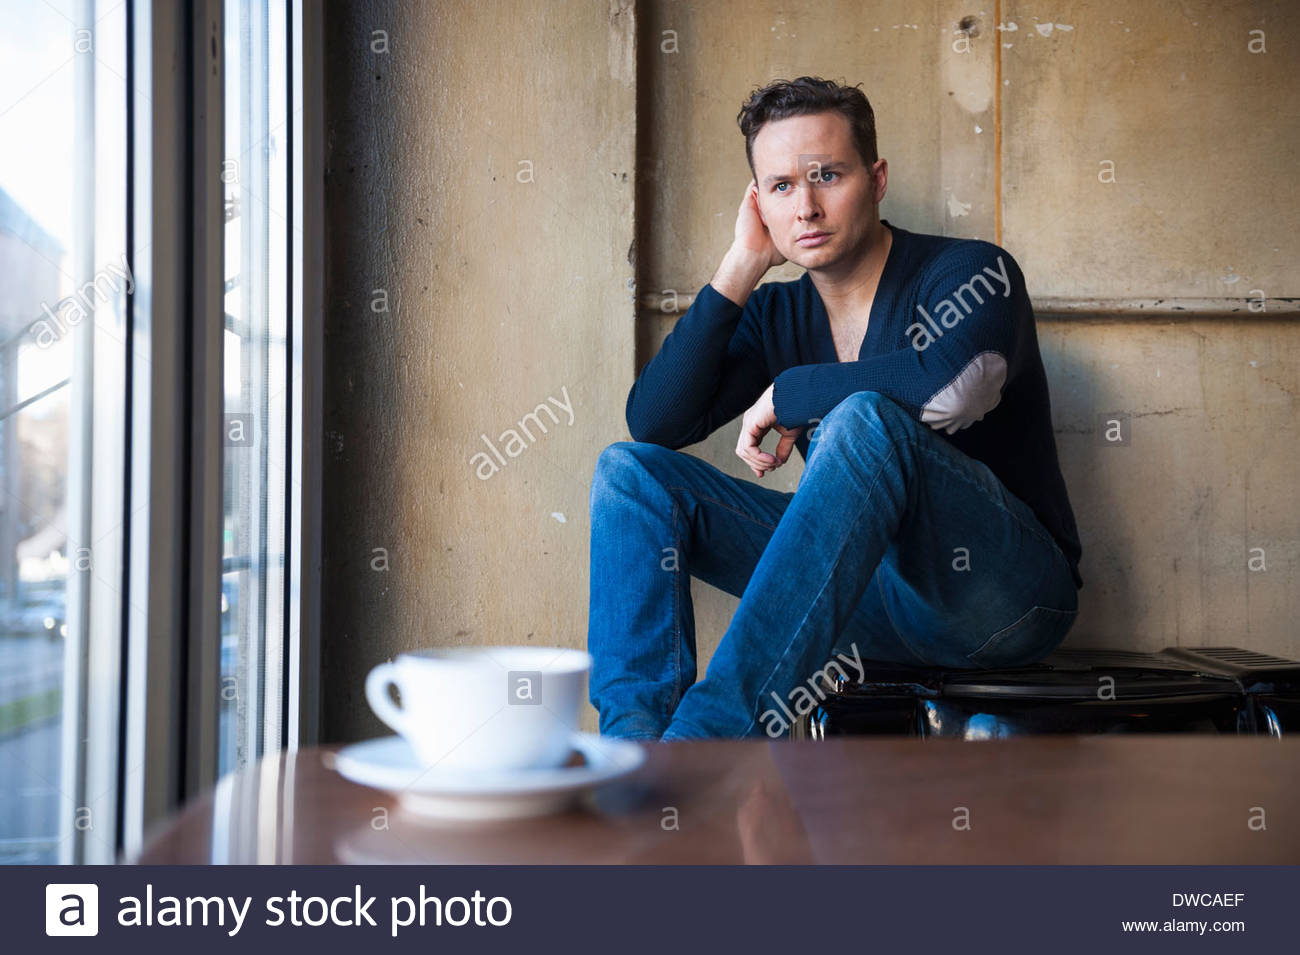 Portrait of mid adult man sitting in cafe Photo Stock